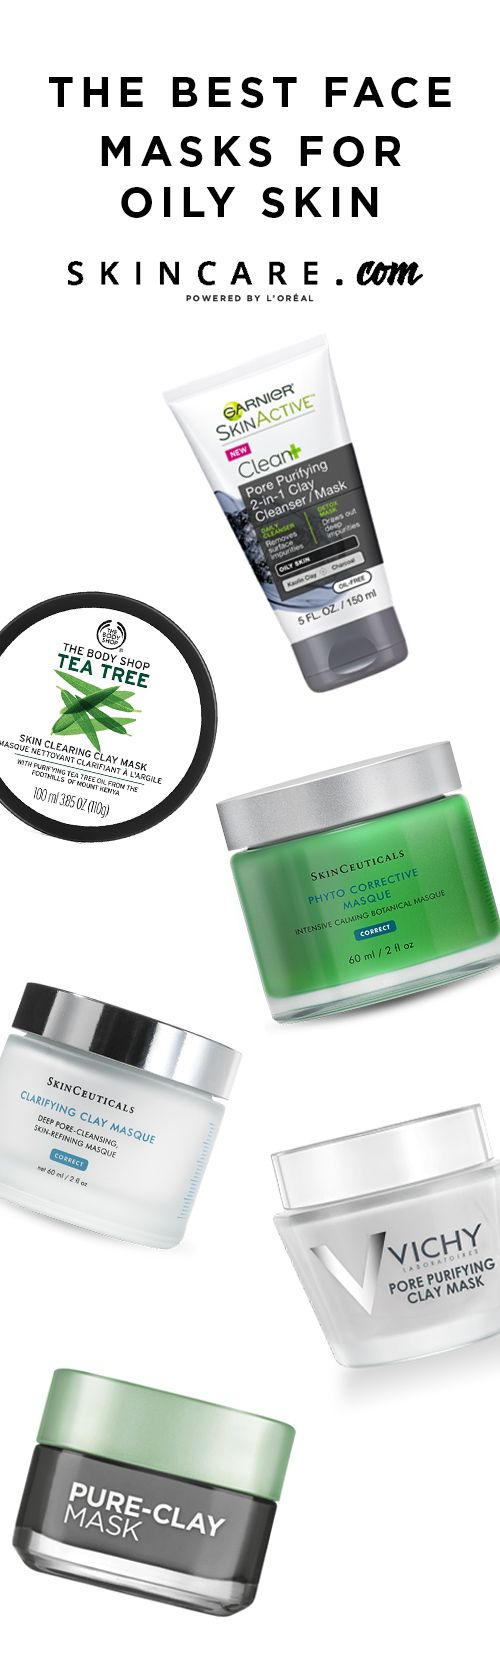 If you're looking for the best face masks for oily skin types, look no further than Garnier's Clean+ Pore Purifying 2-in-1 Clay Cleanser/Mask, Vichy's Pore Purifying Clay Mask, SkinCeuticals Clarifying Clay Masque, The Body Shop's Tea Tree Skin Clearing Clay mask, Kiehl's Rare Earth Deep Pore Cleansing Masque, L'Oréal Paris' Pure-Clay Mask Detox & Brighten Treatment Mask, & SkinCeuticals Phyto Corrective Masque. Click to read our product reviews on the best face masks for oily skin.